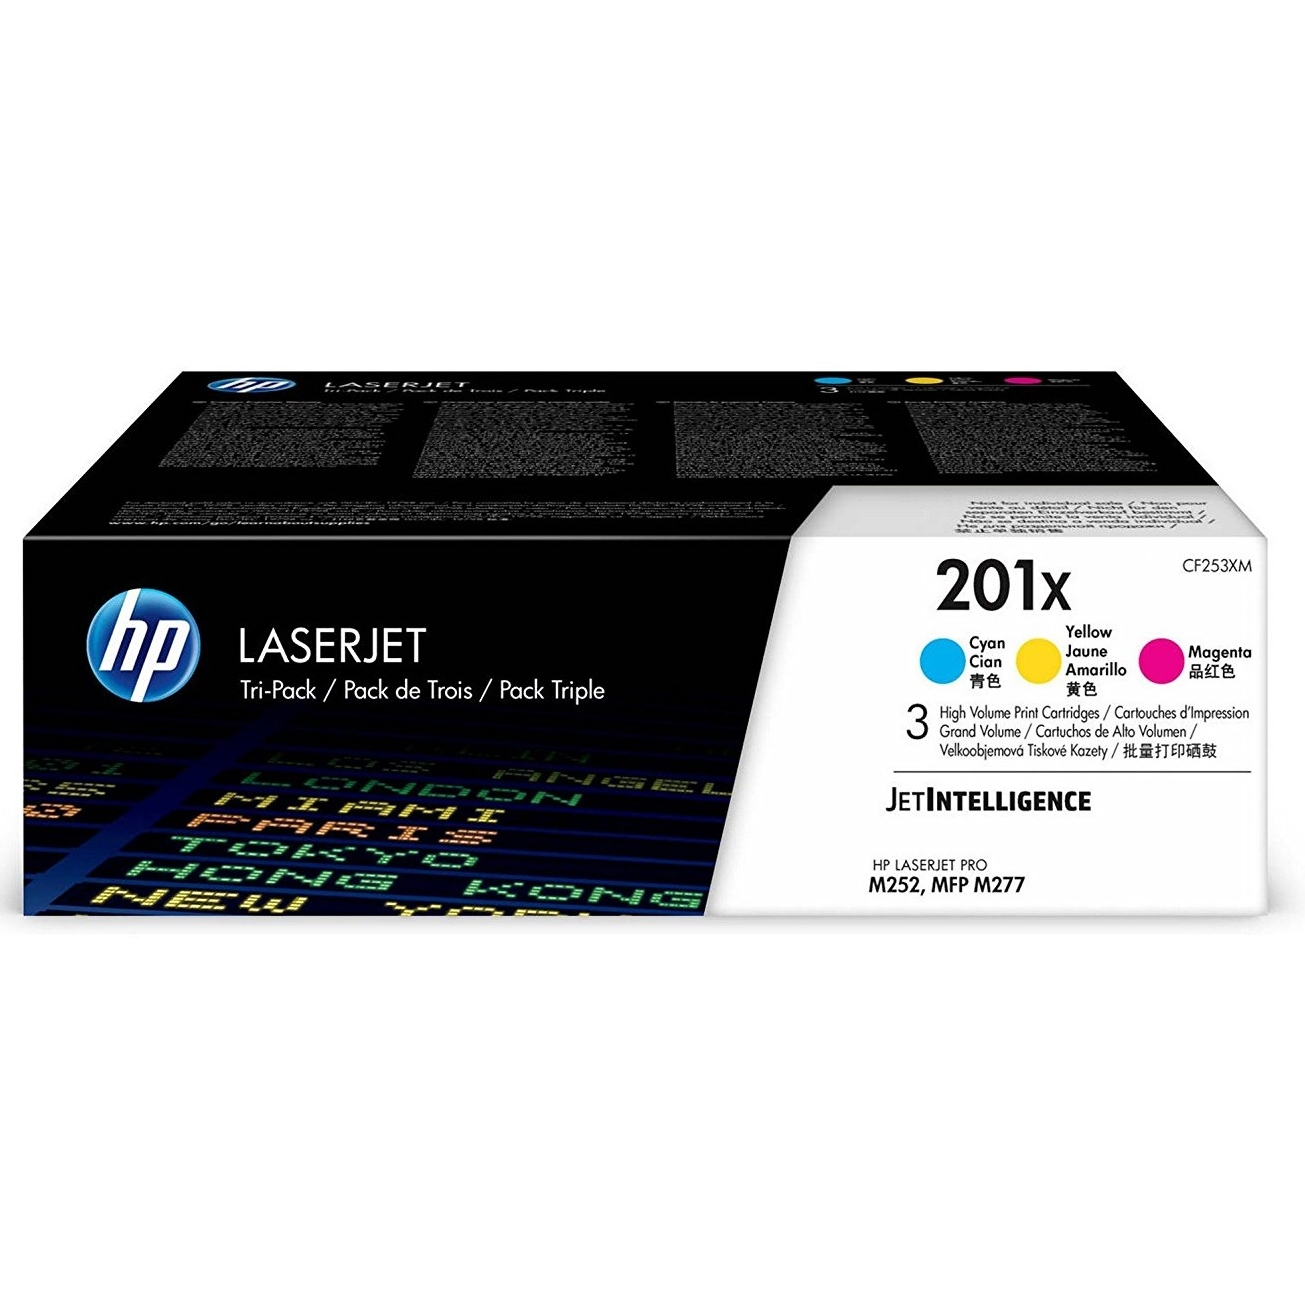 Original HP 201X Cyan Magenta Yellow Pack High Capacity Toner Cartridges (CF253XM)